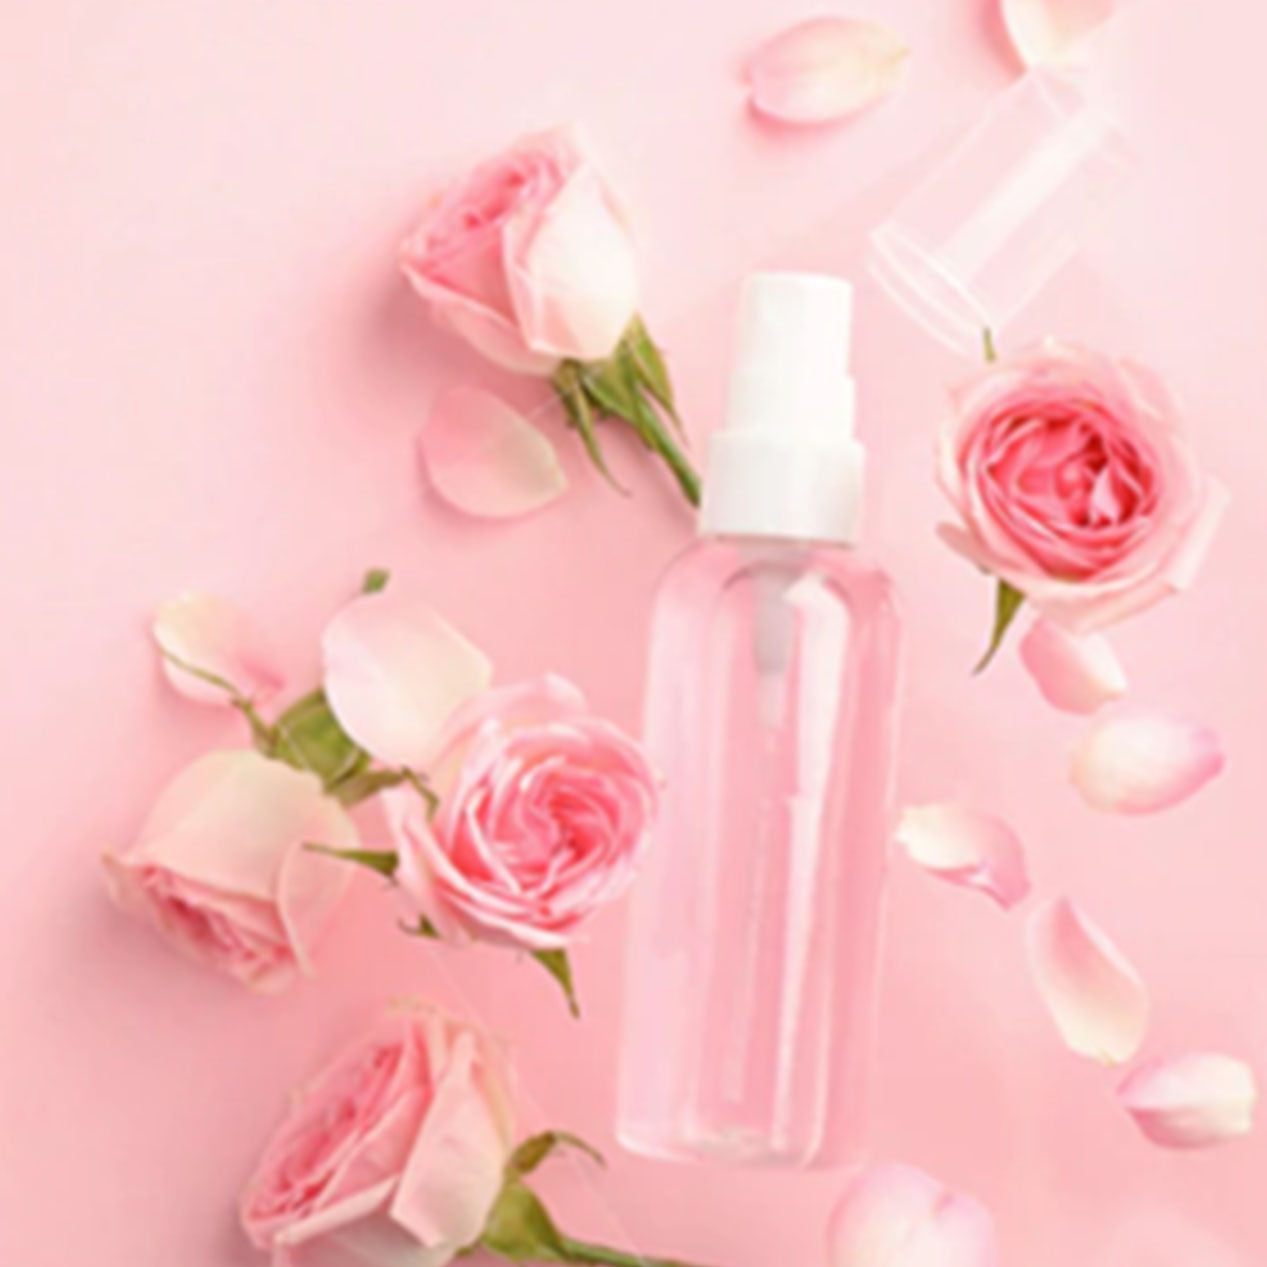 DIY Makeup Setting Spray that Works!